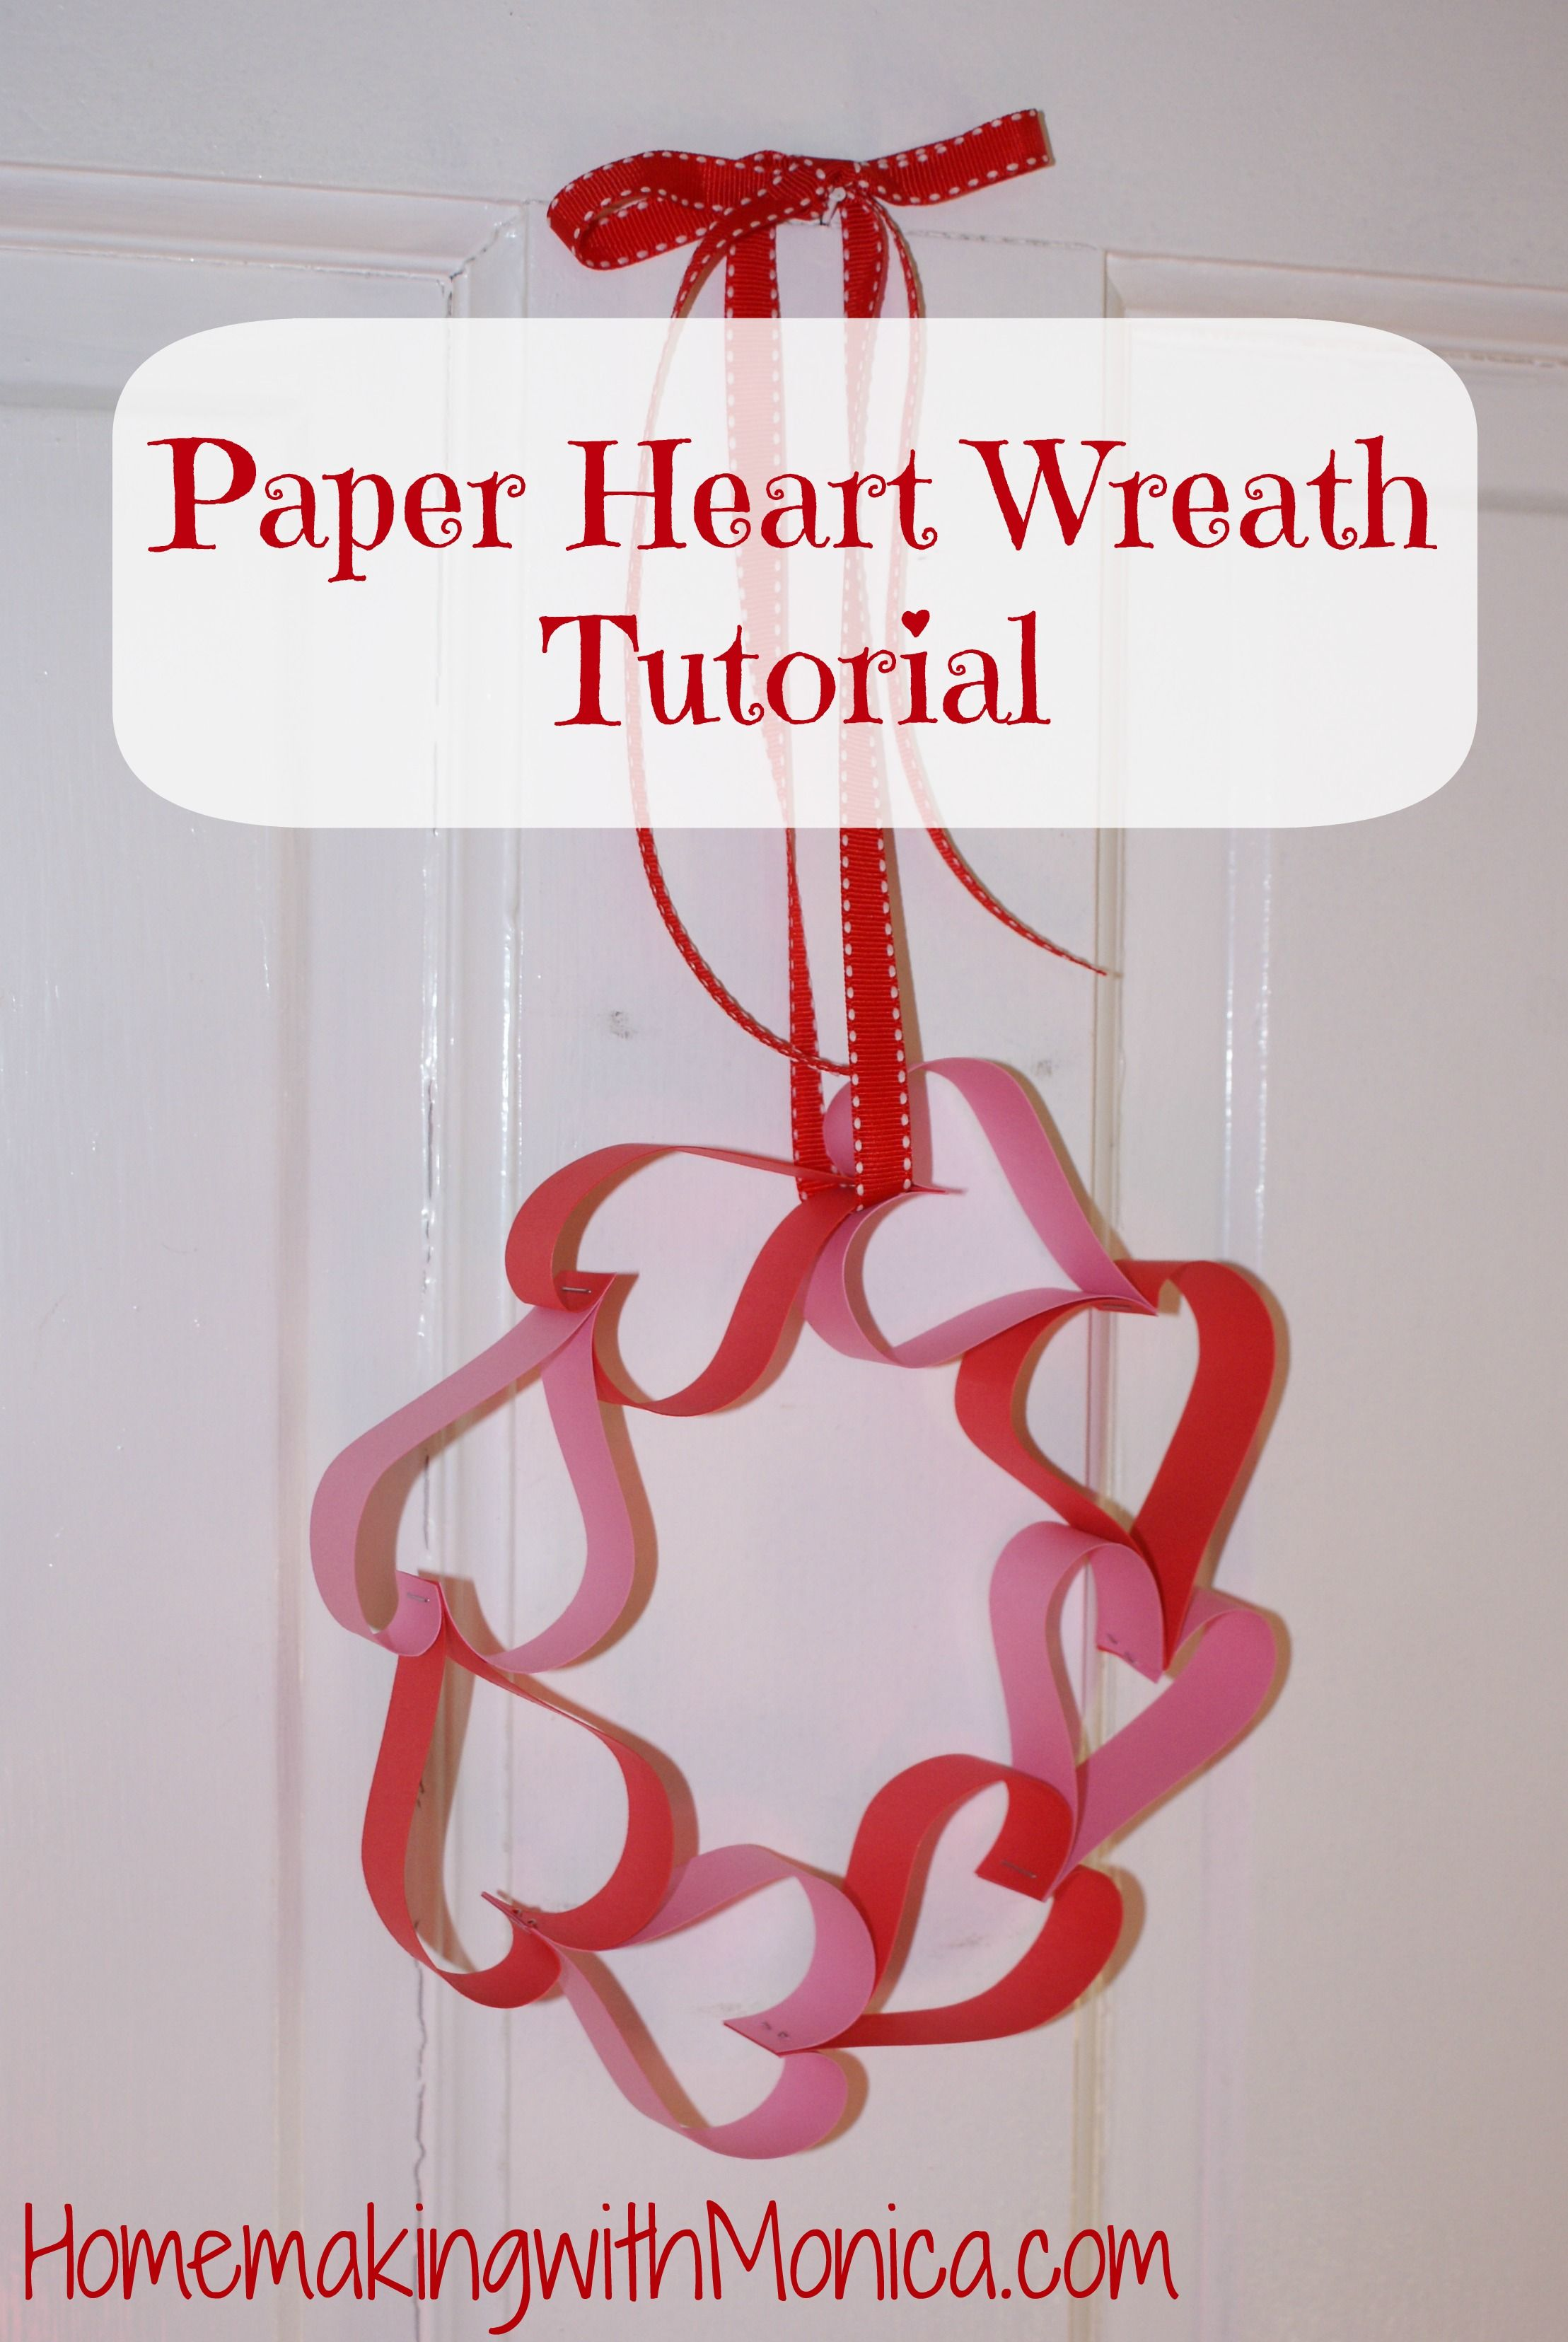 Your little one can decorate their bedroom door with this homemade your little one can decorate their bedroom door with this homemade paper heart wreath jeuxipadfo Choice Image